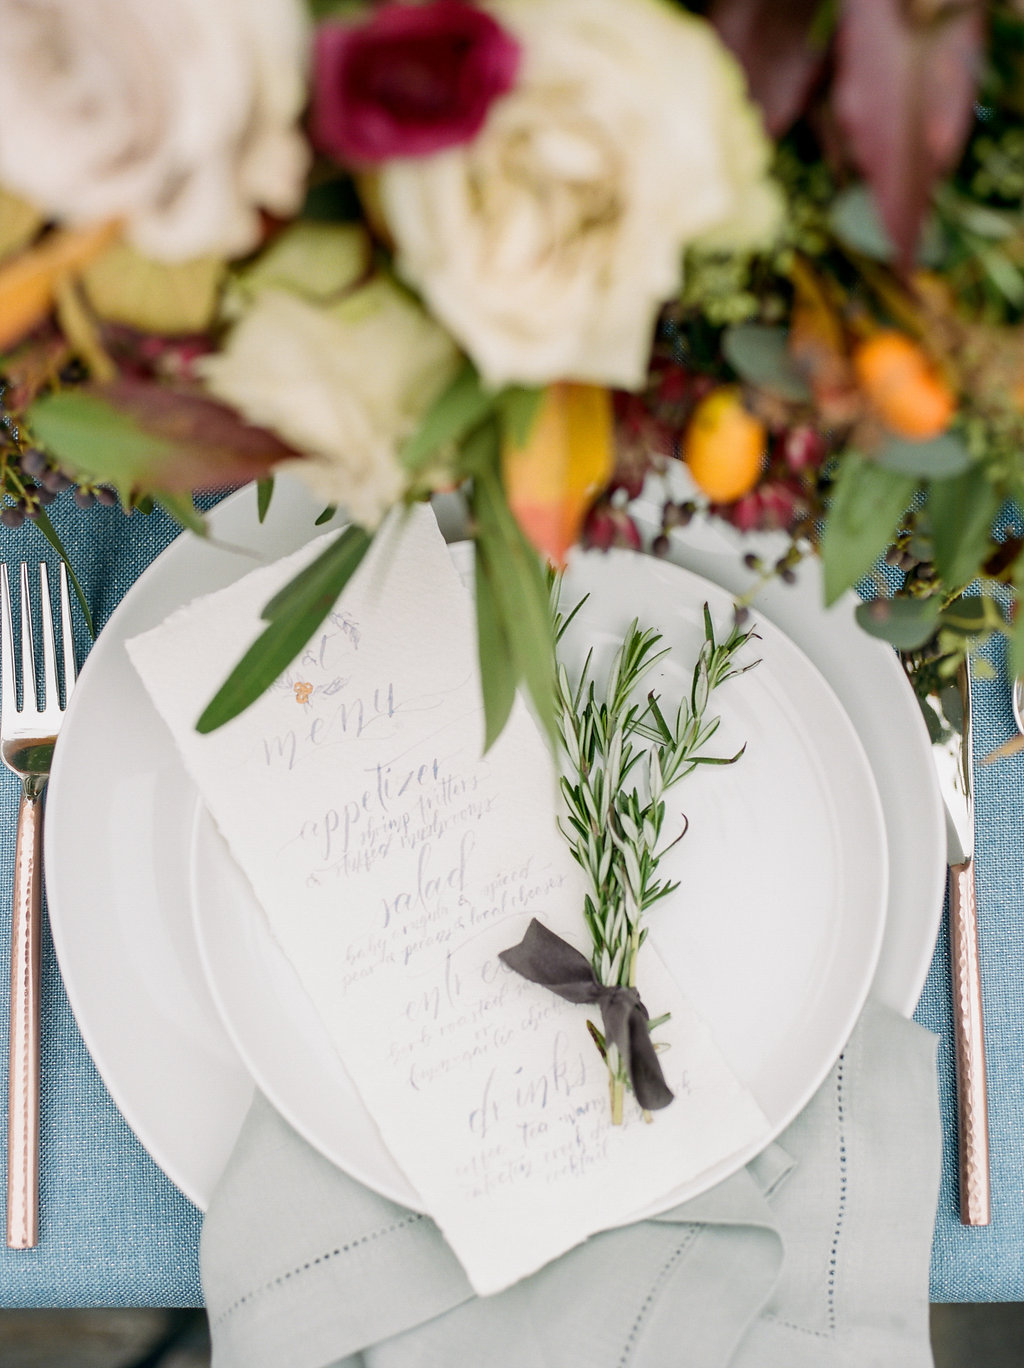 place settings with rosemary - photo by Lissa Ryan Photography http://ruffledblog.com/modern-romantic-wedding-ideas-with-family-heirlooms